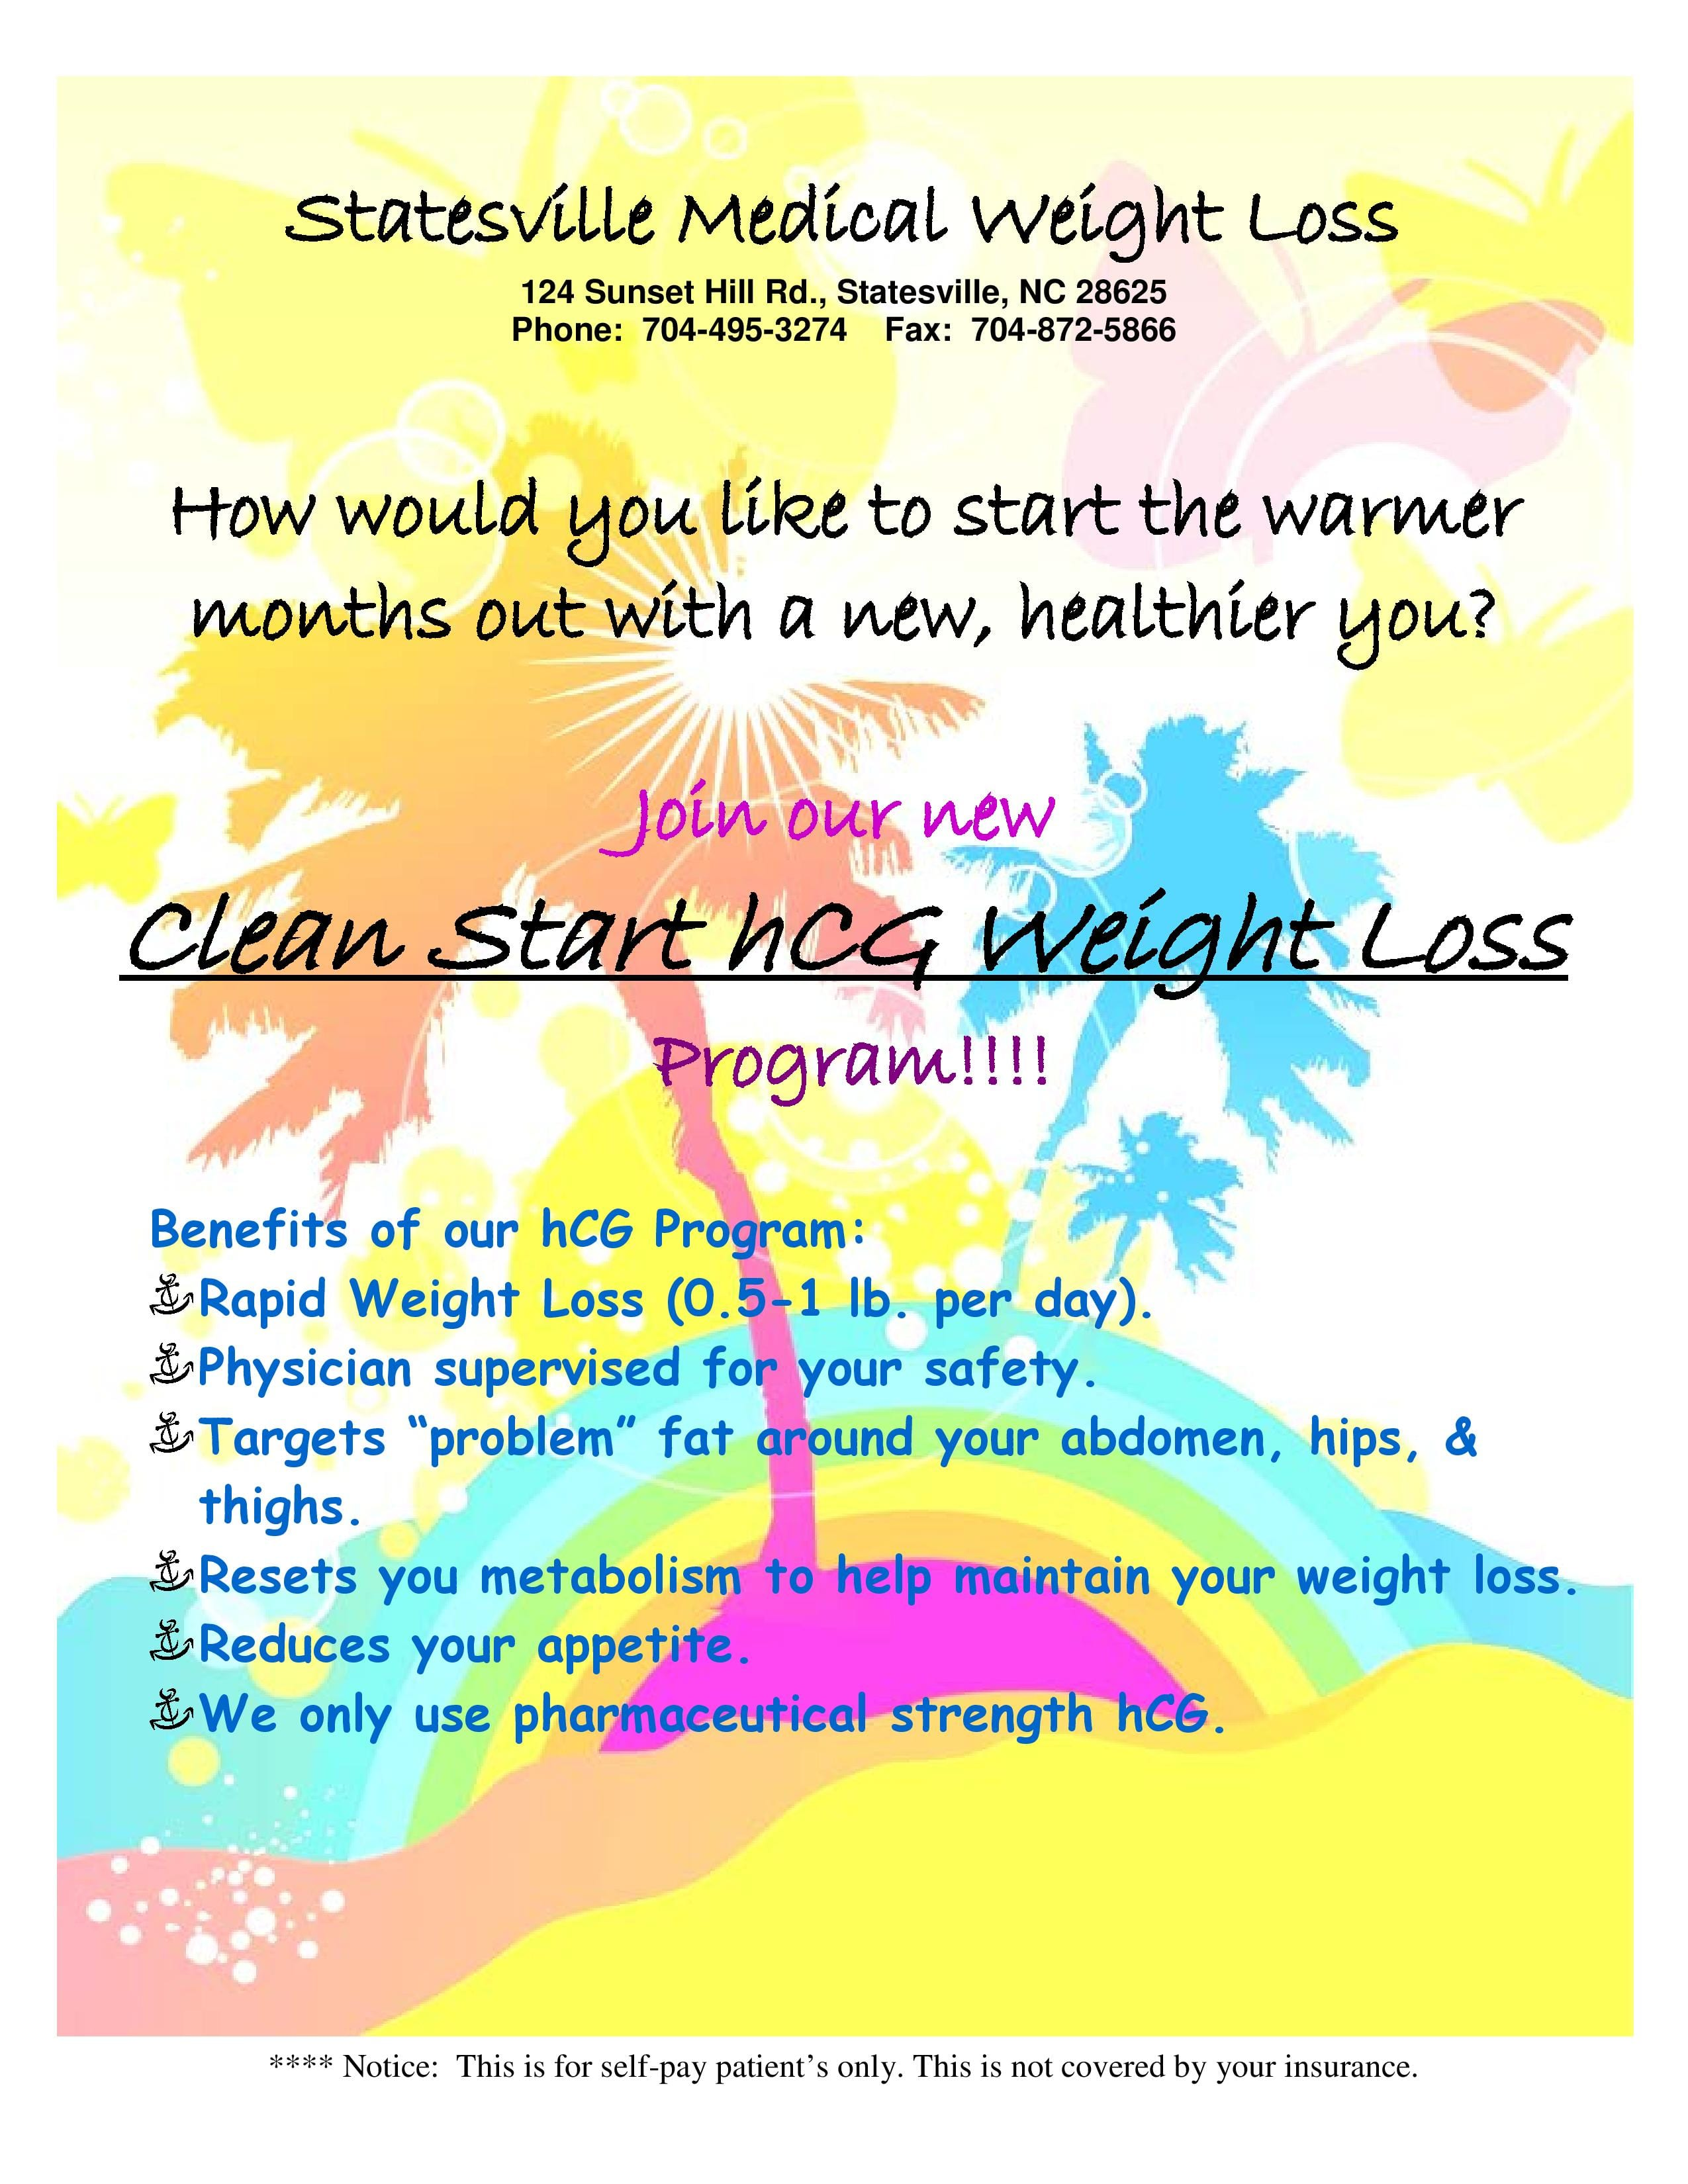 Statesville Medical Weight Loss Carolina Specialty Care